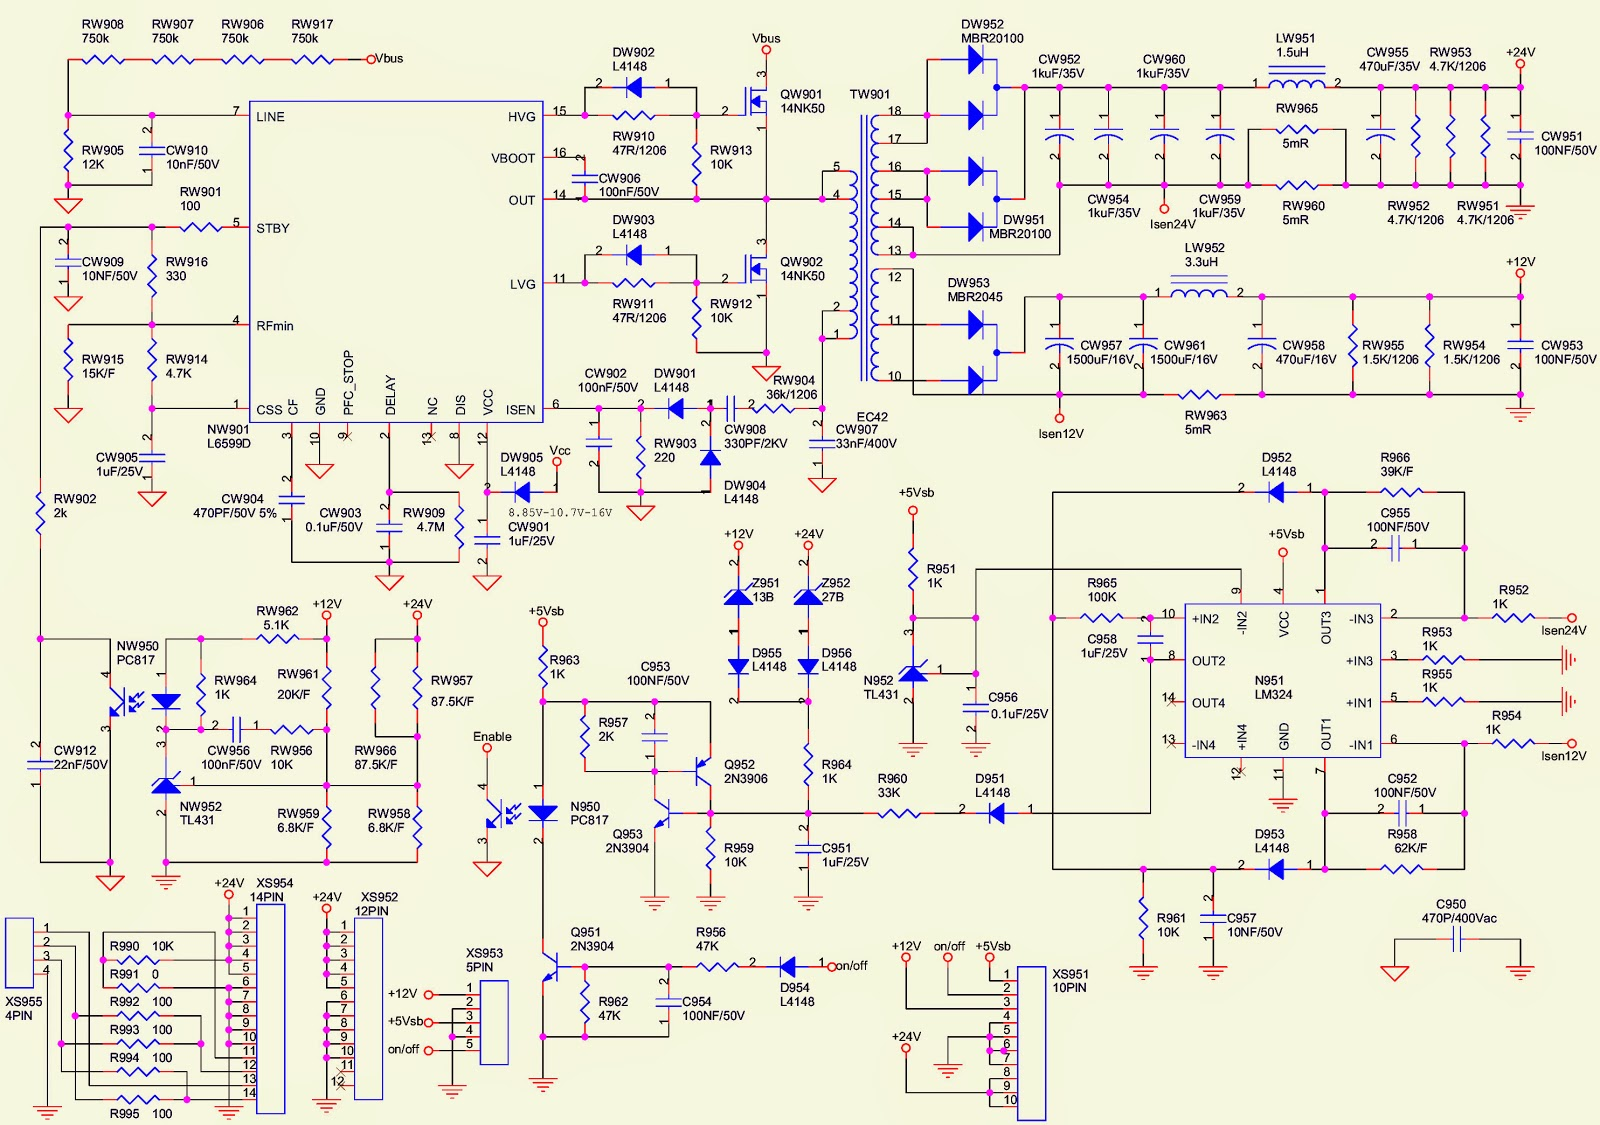 POWER.bmp lc4245w toshiba lcd tv power supply schematic [circuit diagram toshiba motor wiring diagram at mifinder.co